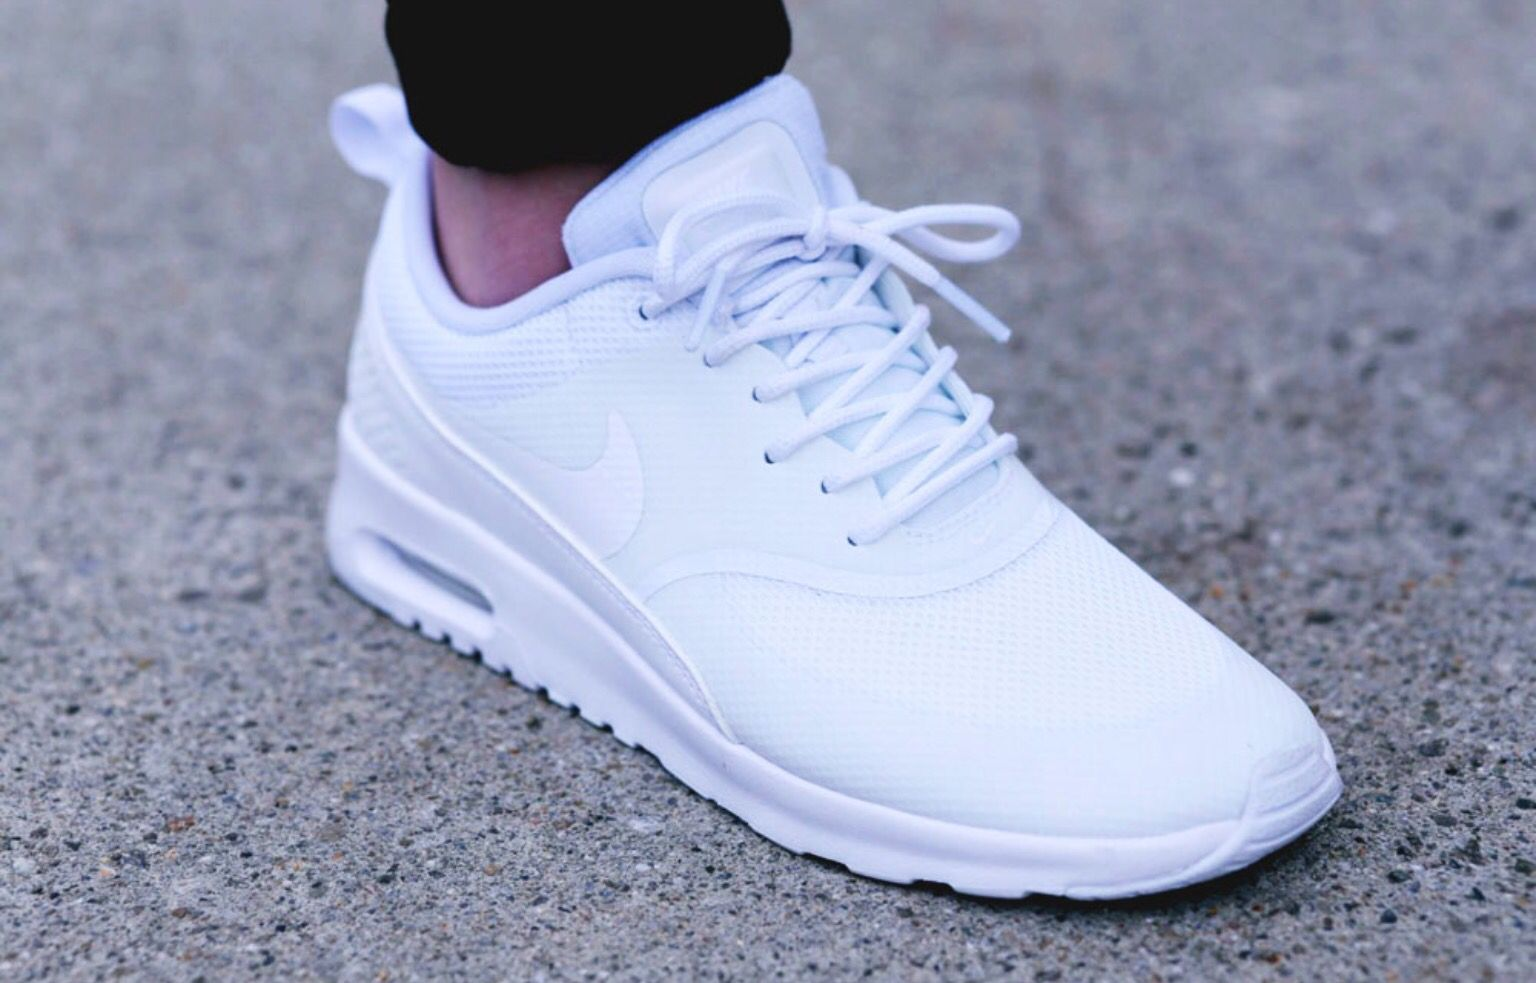 White nike air max thea | Creps in 2018 | Pinterest | Shoes